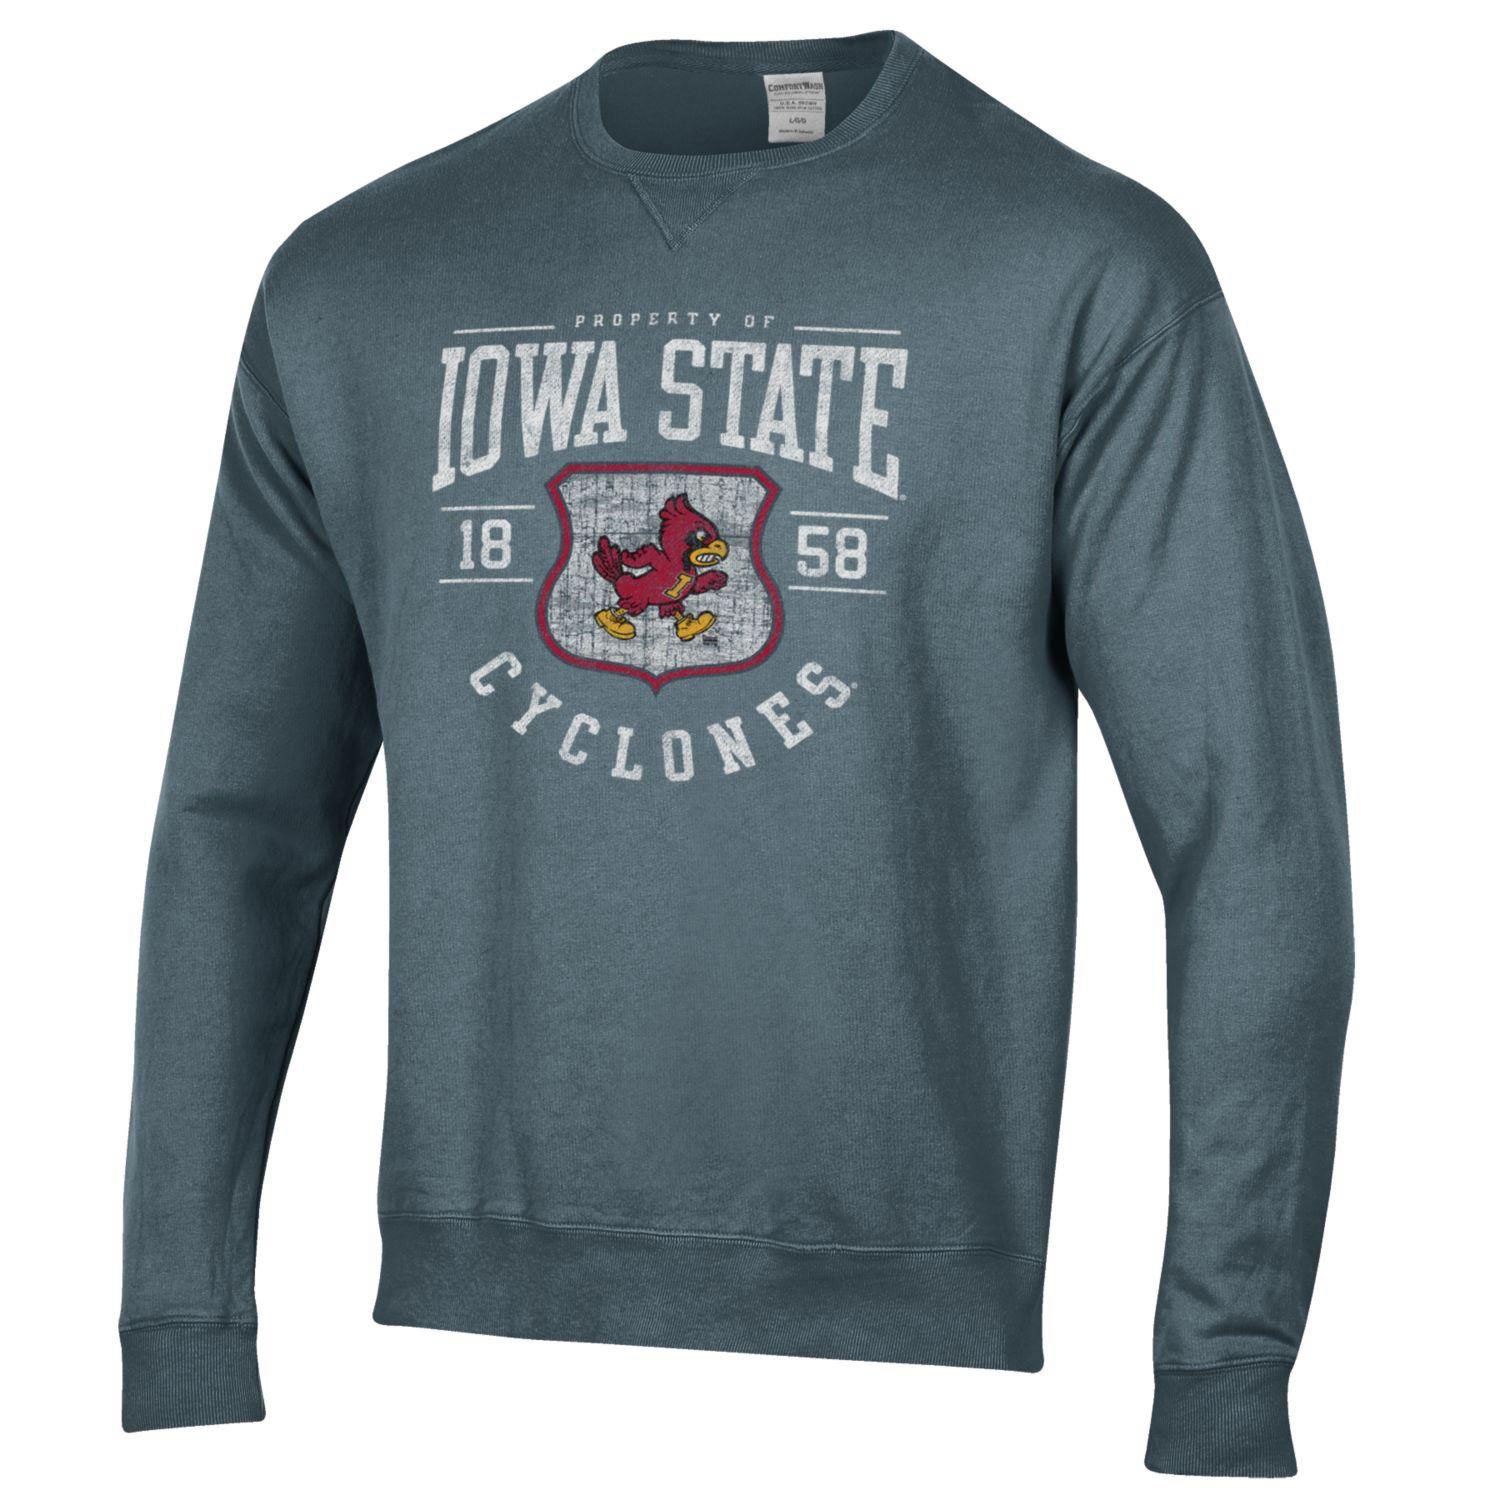 Image For Property Of Iowa State Crew Neck Sweatshirt